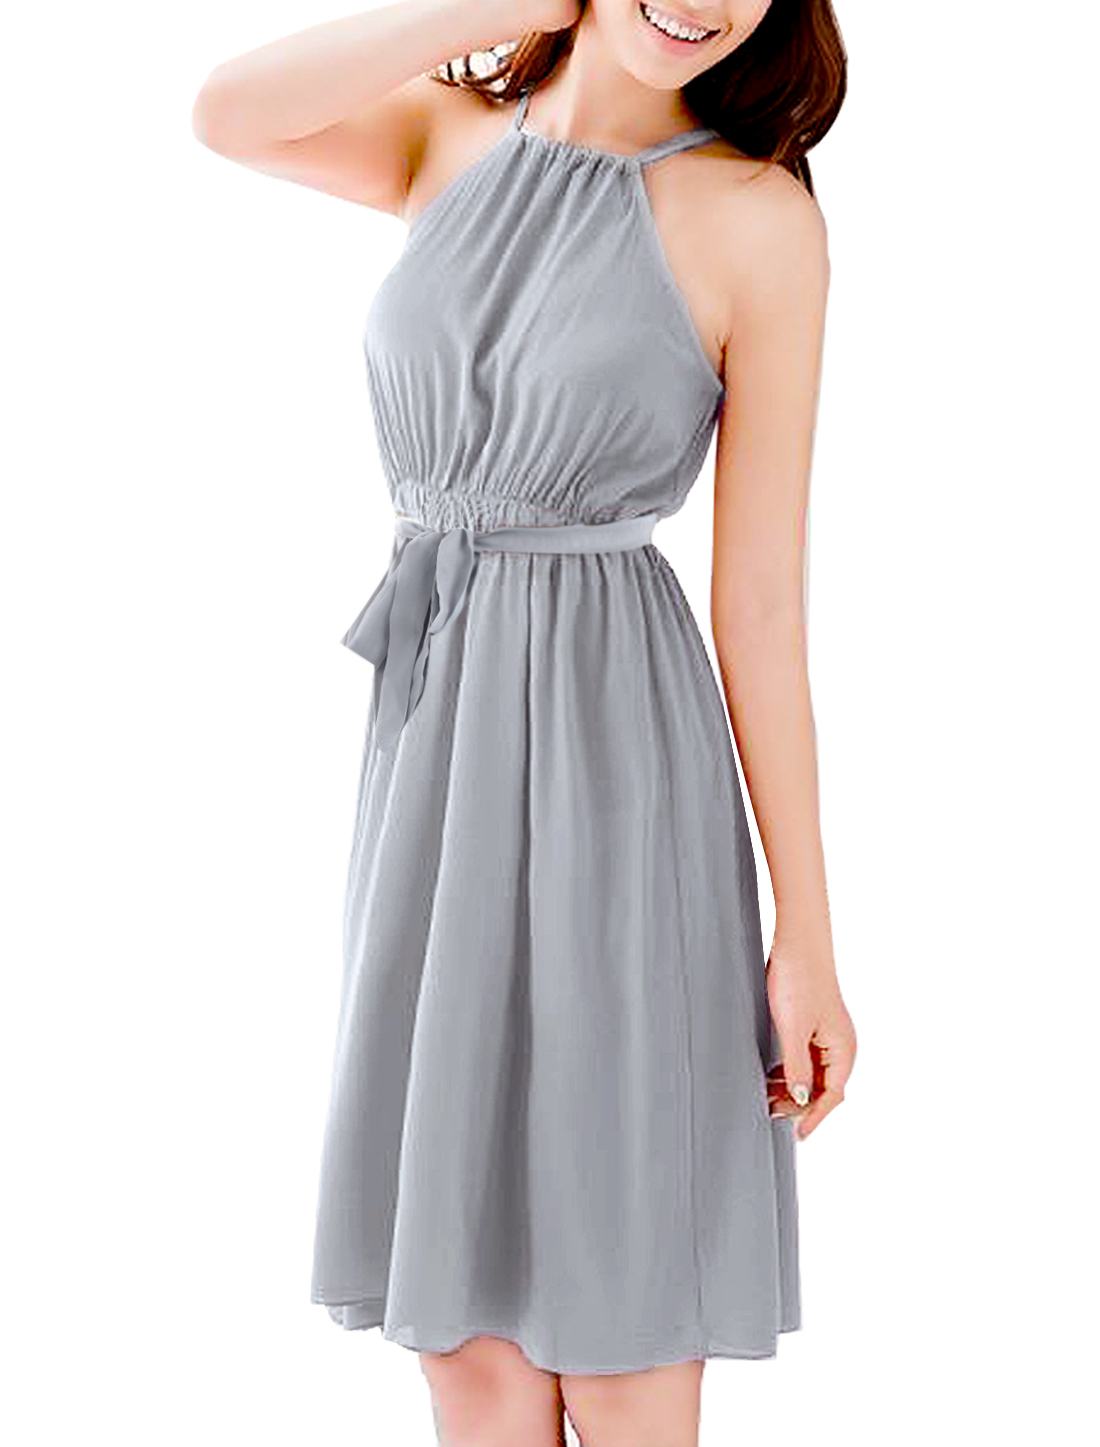 Woman Chic Drawstring Halter Neck Light Gray Summer Dress M